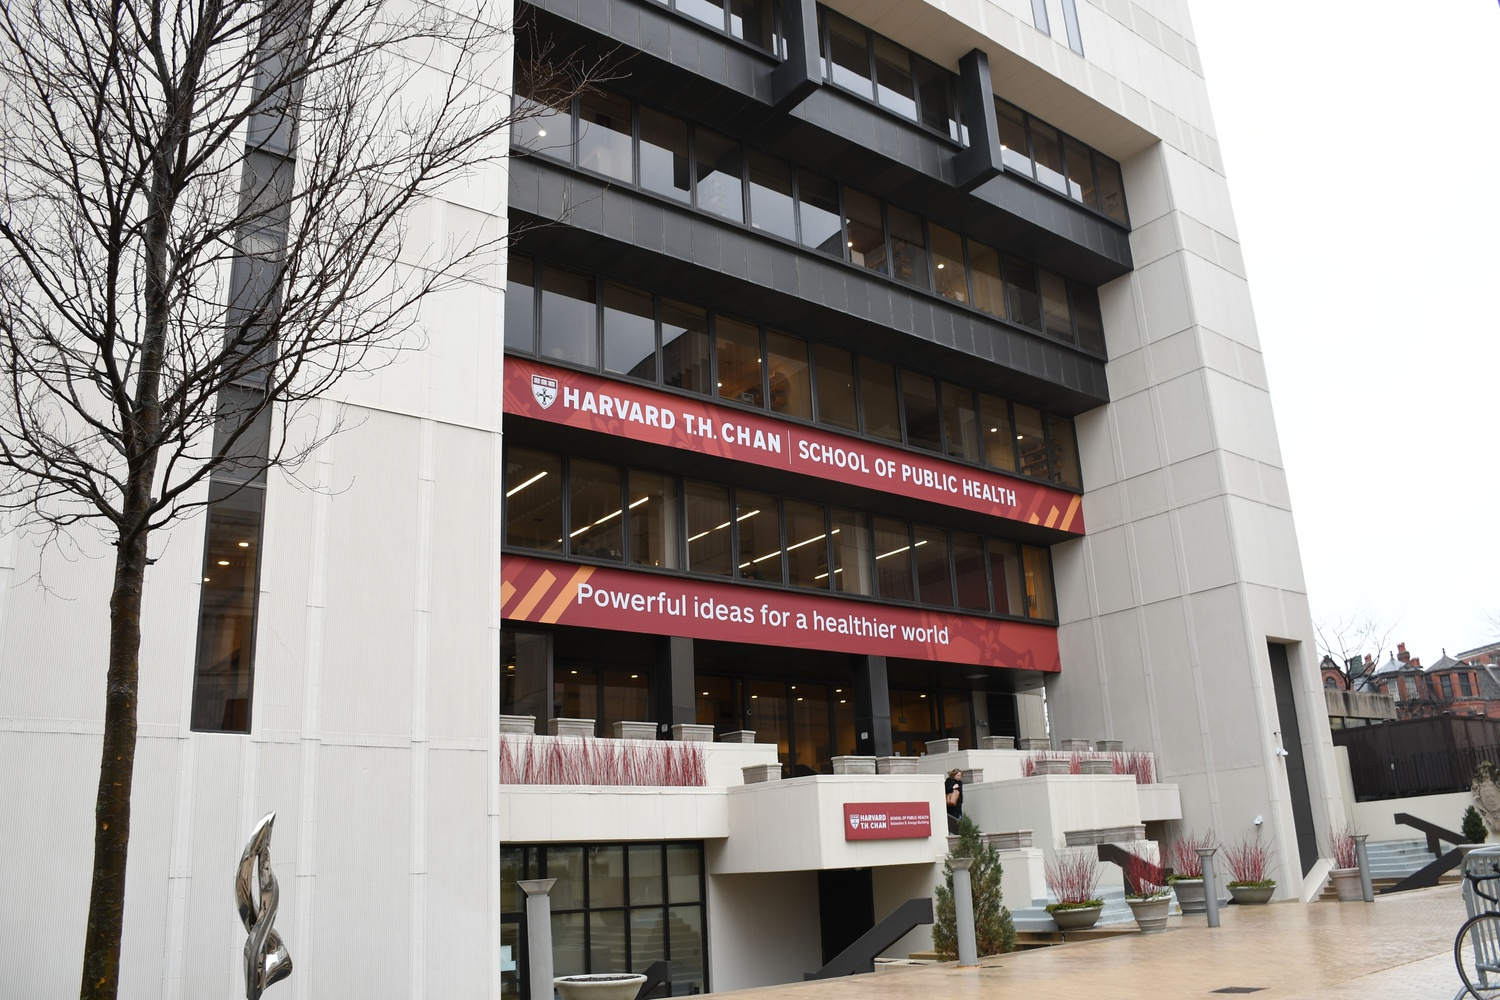 The Kresge Building at the Harvard T.H. Chan School of Public Health is a short distance from the site of Tuesday's reported shooting near 90 Smith Street.